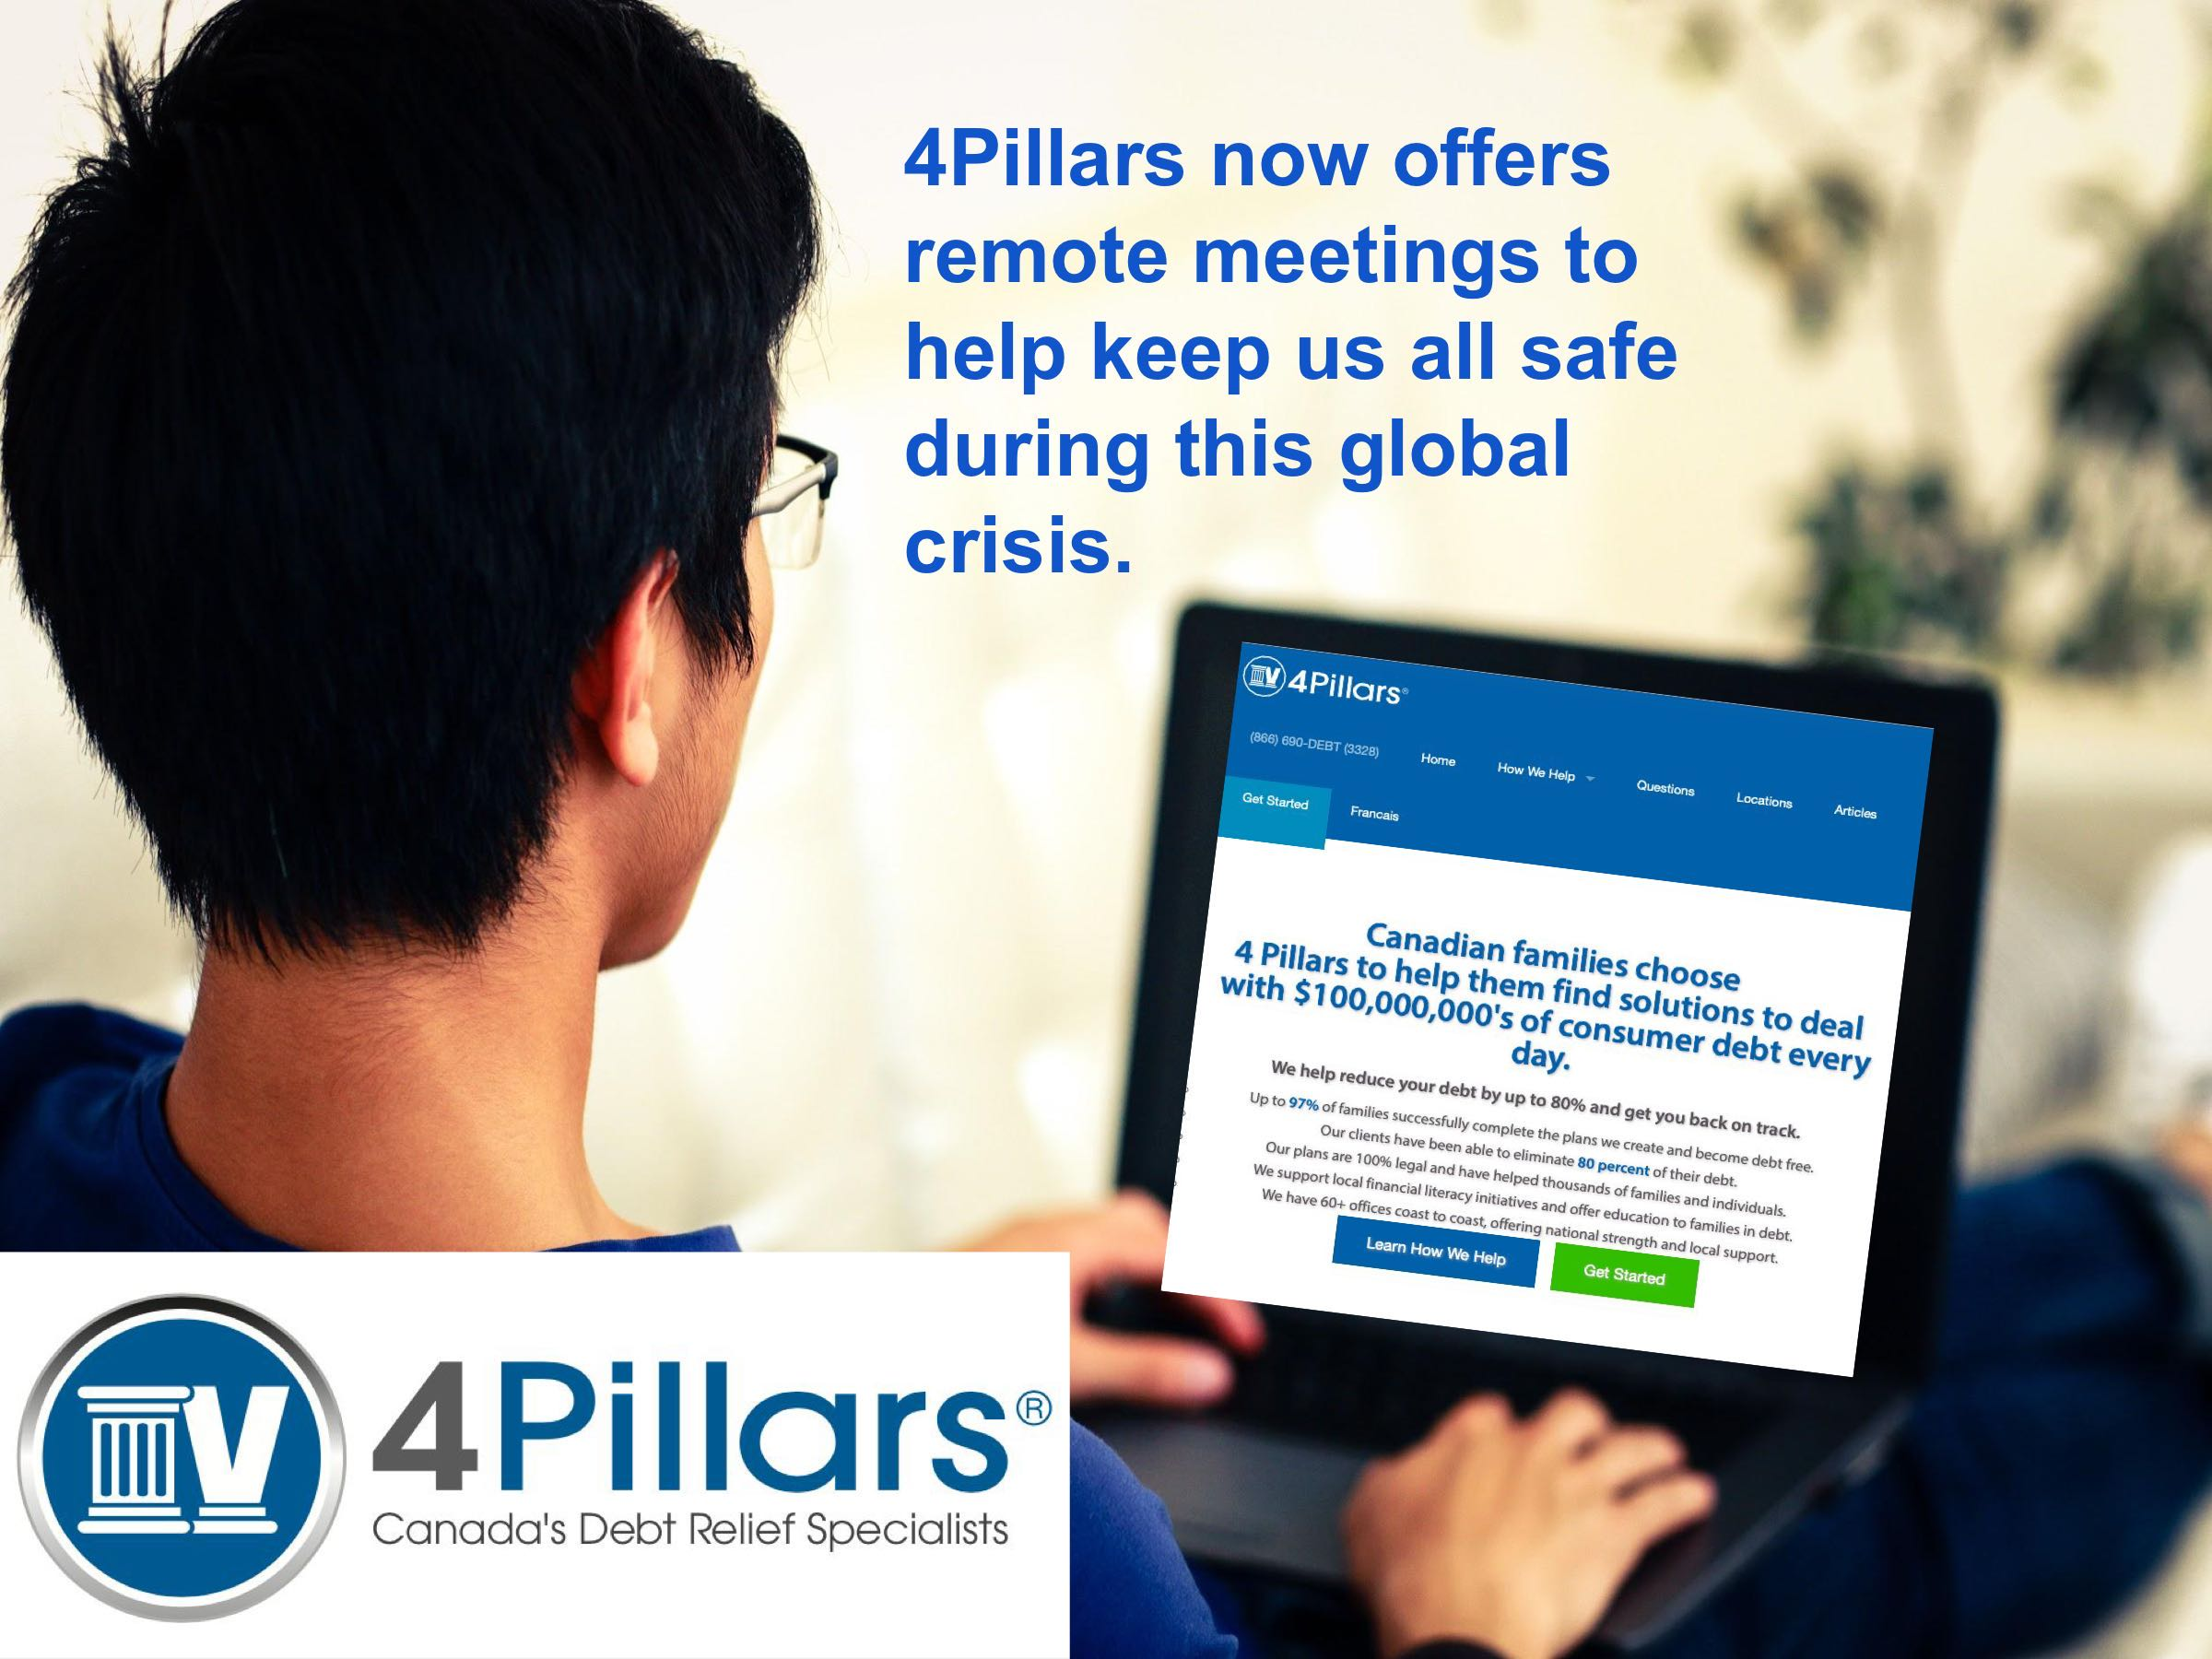 The 4 Pillars Team is open for business